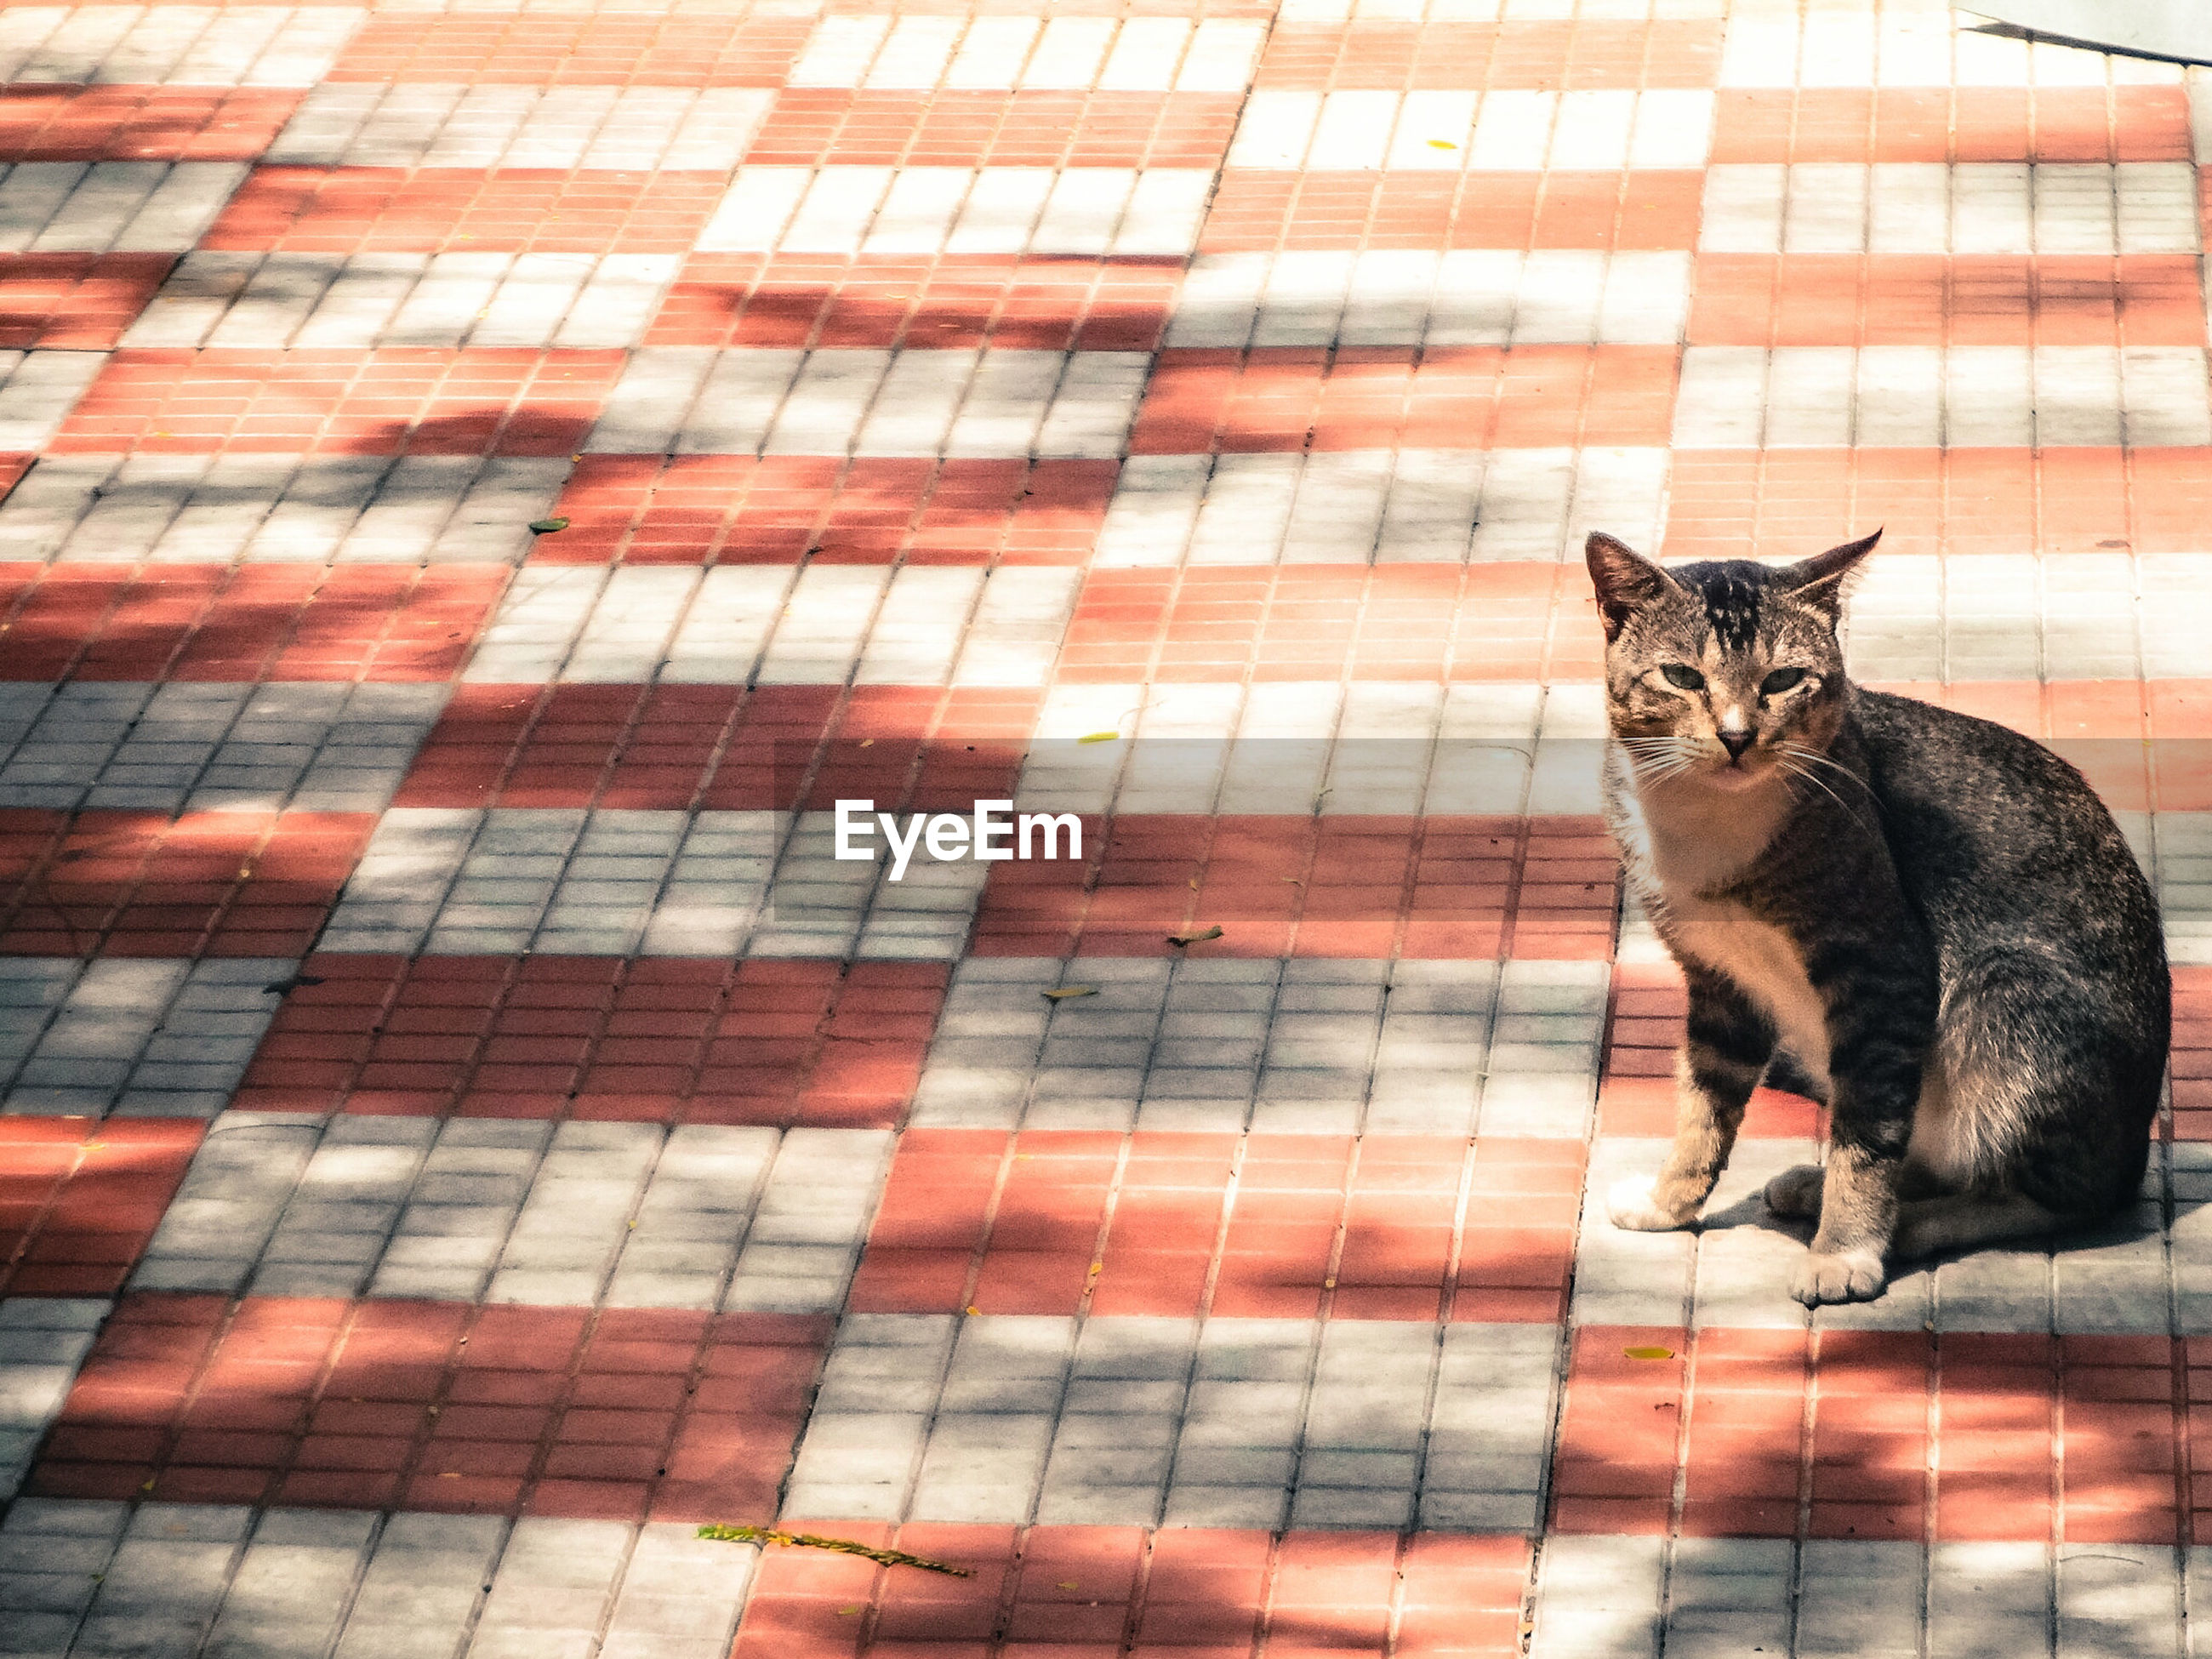 High angle view of cat sitting on paving stone street